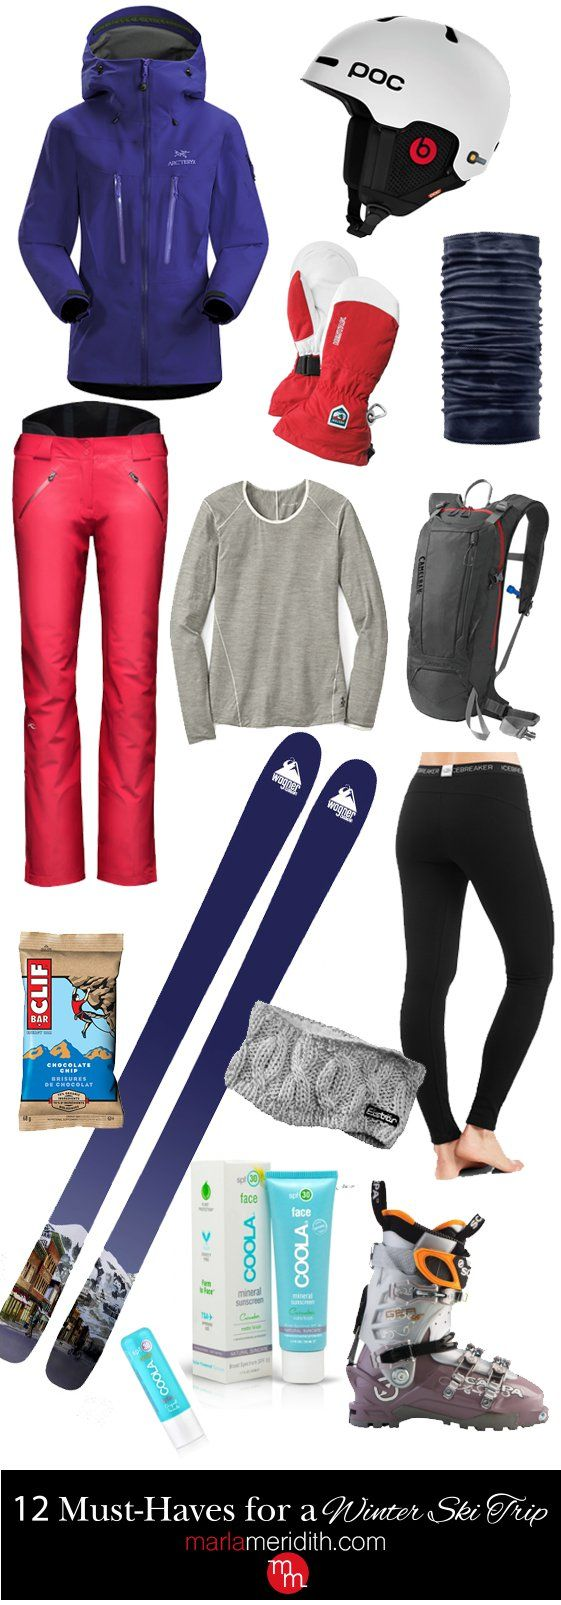 70 best Ski Bunny/ Let's hit the slopes images on ...